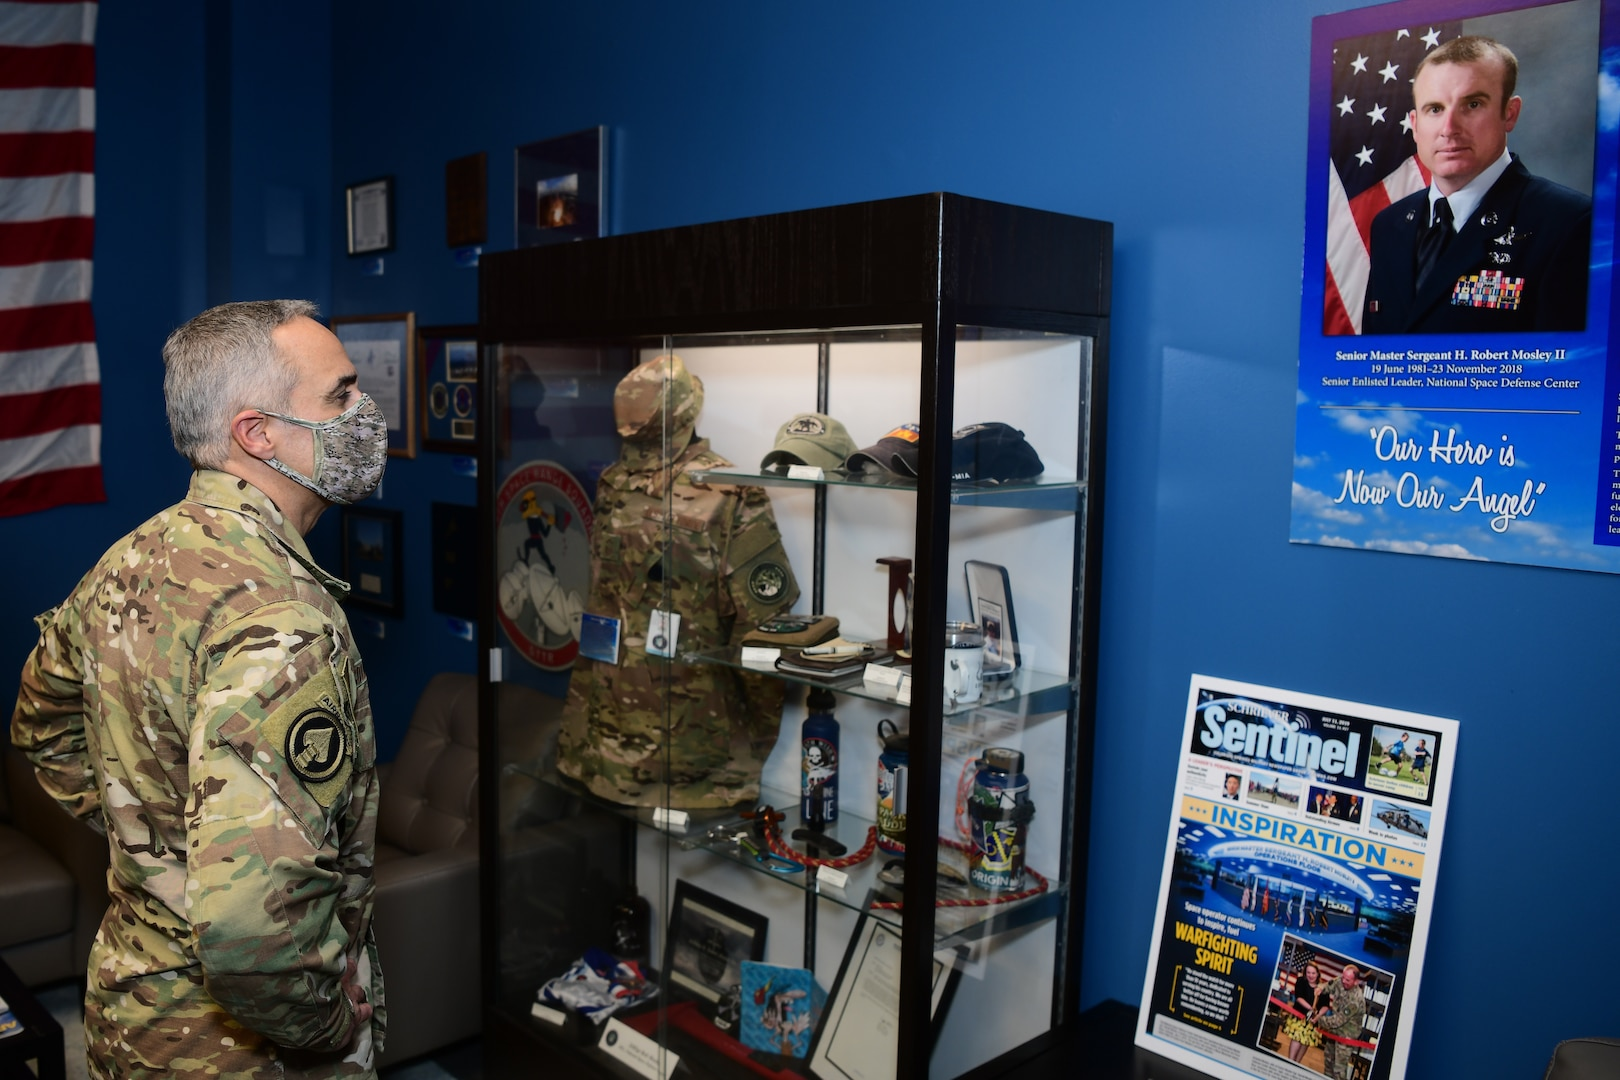 """Senior Enlisted Advisor to the Chairman of the Joint Chiefs of Staff Ramón """"CZ"""" Colón-López views the Senior Master Sgt. Harold Mosely, II library on the National Space Defense Center operations floor at Schriever Air Force Base, Colorado, Jan. 13, 2021."""